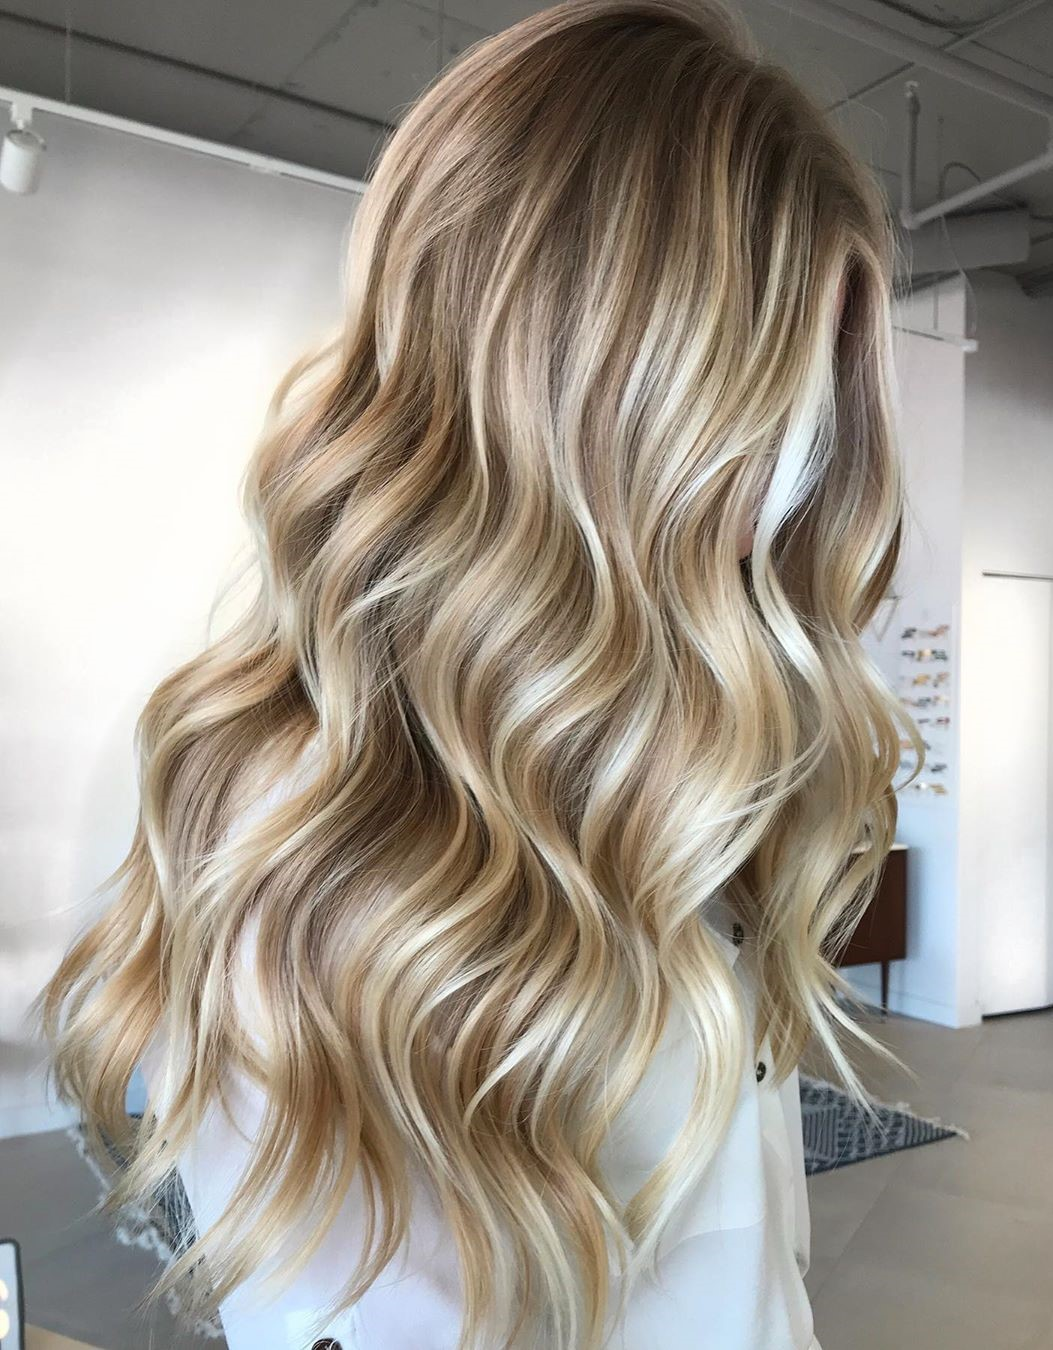 35+ Different Blond Hair Colors Images